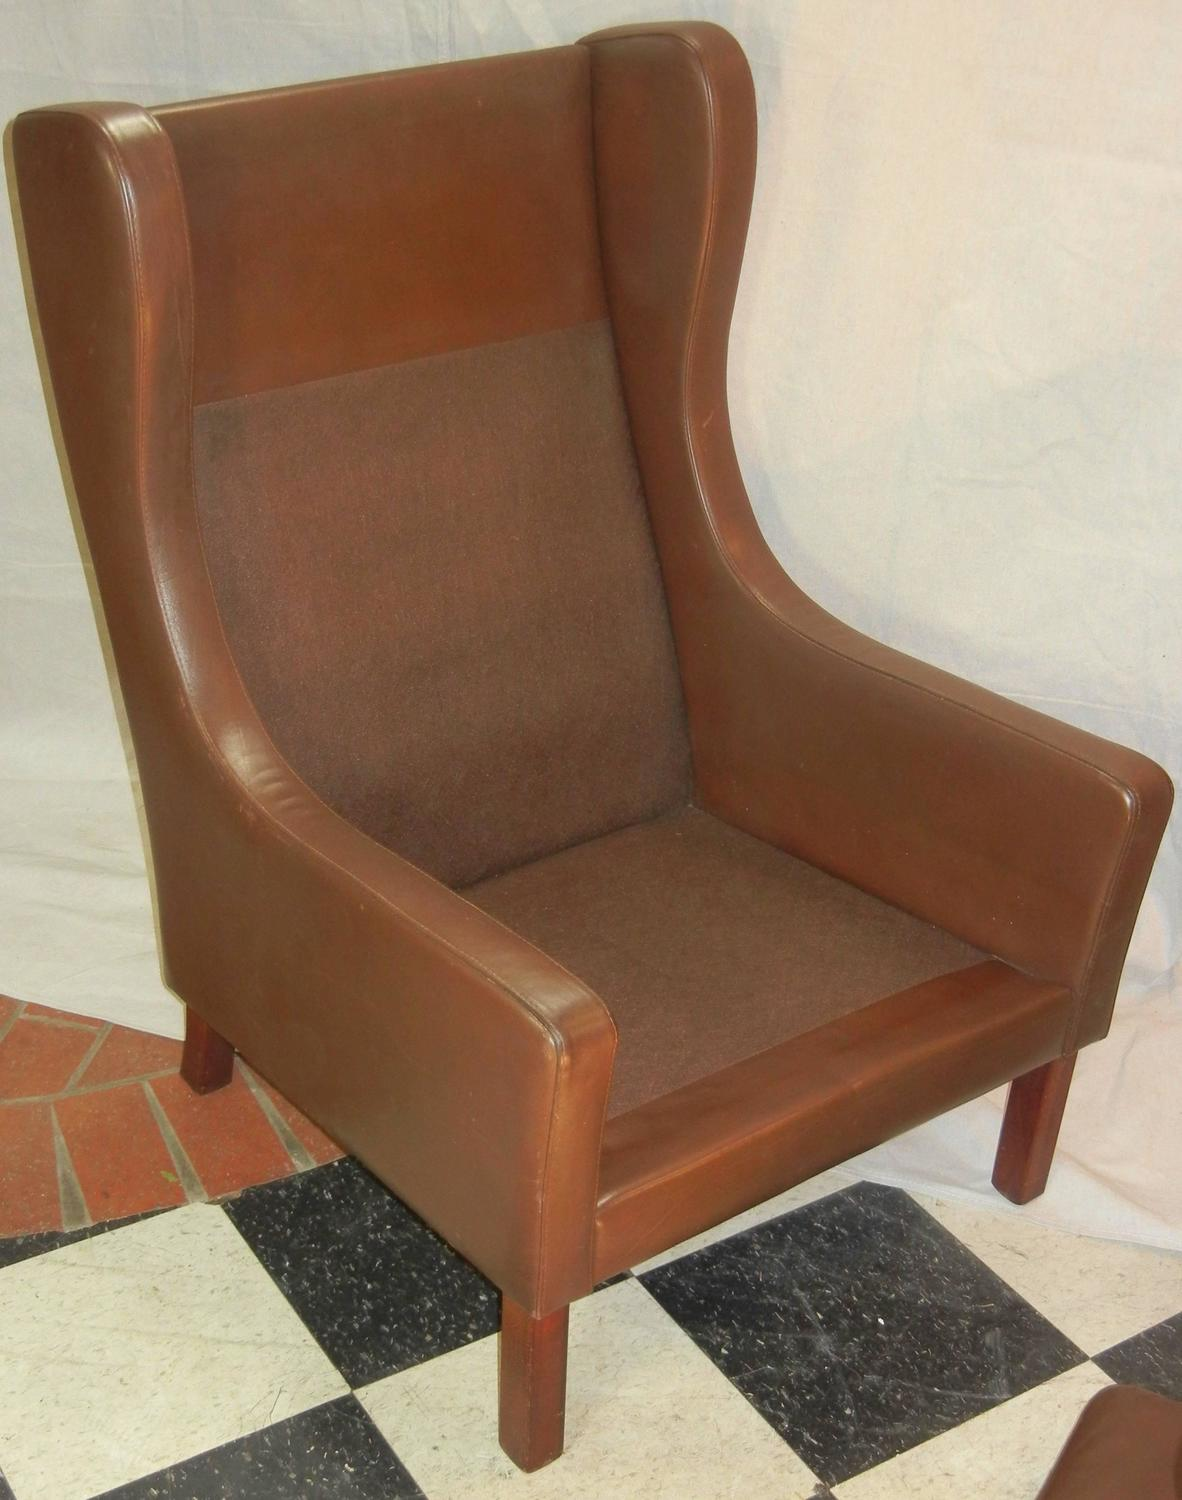 modern wingback chairs for sale small dining room with arms leather wing chair in danish børge mogensen style